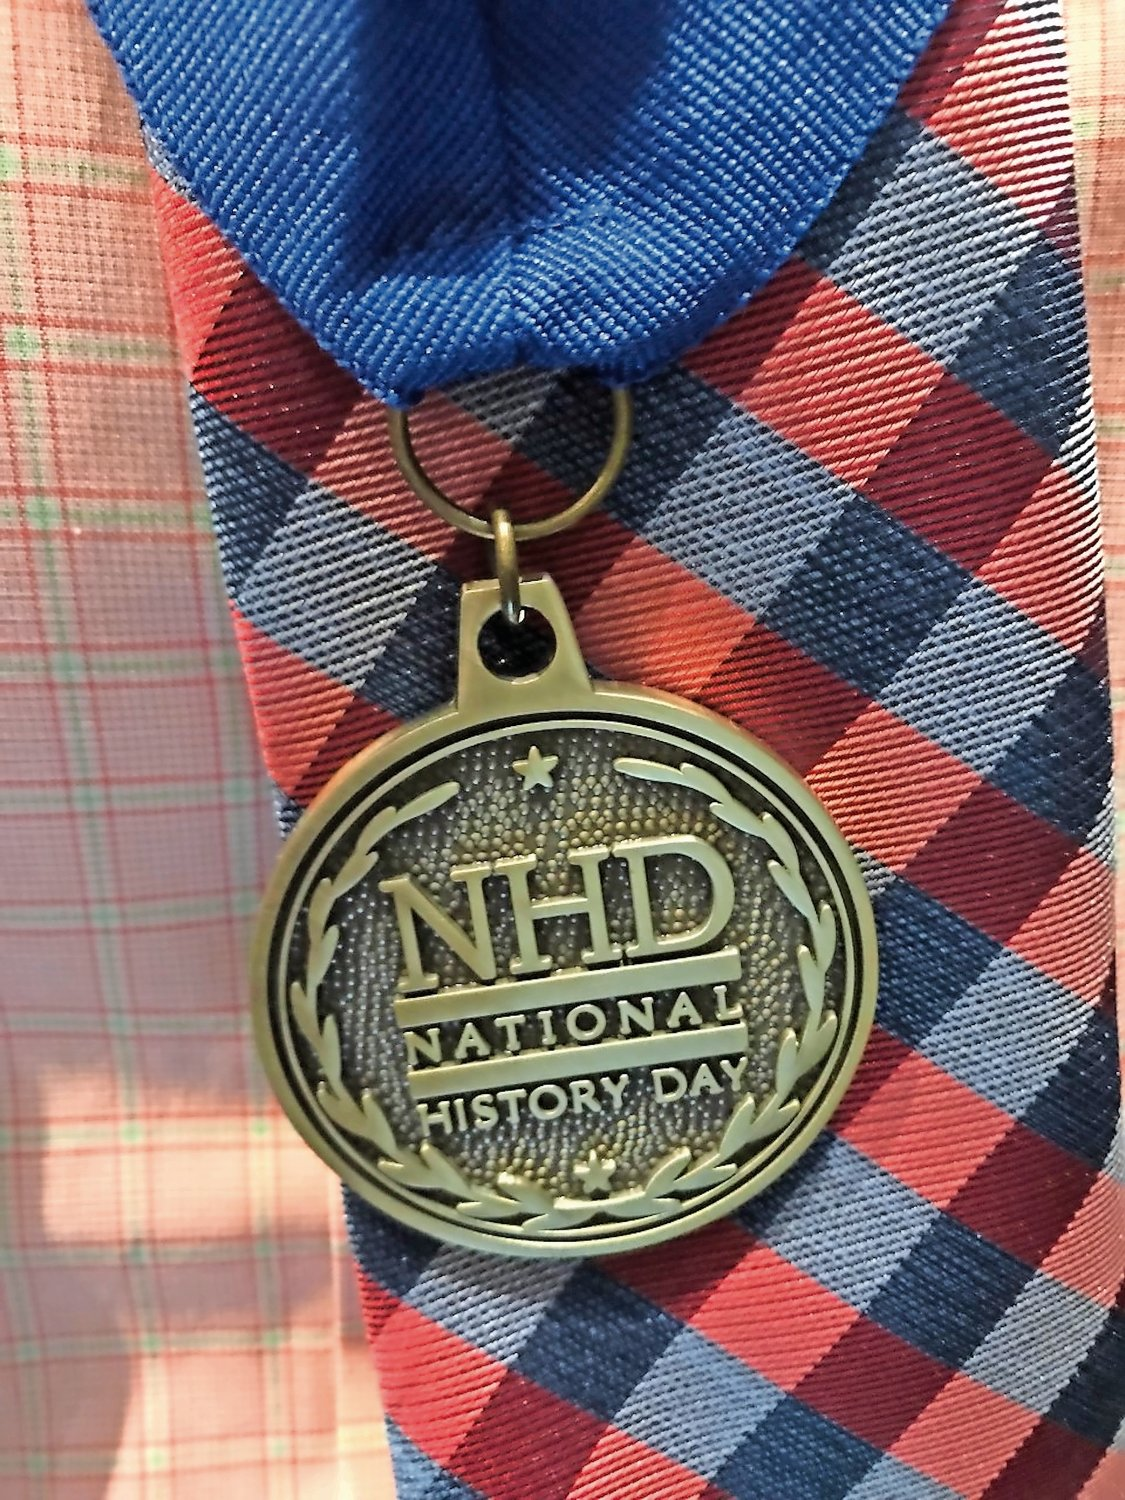 Nicholas wore his first place History Day medal with pride.